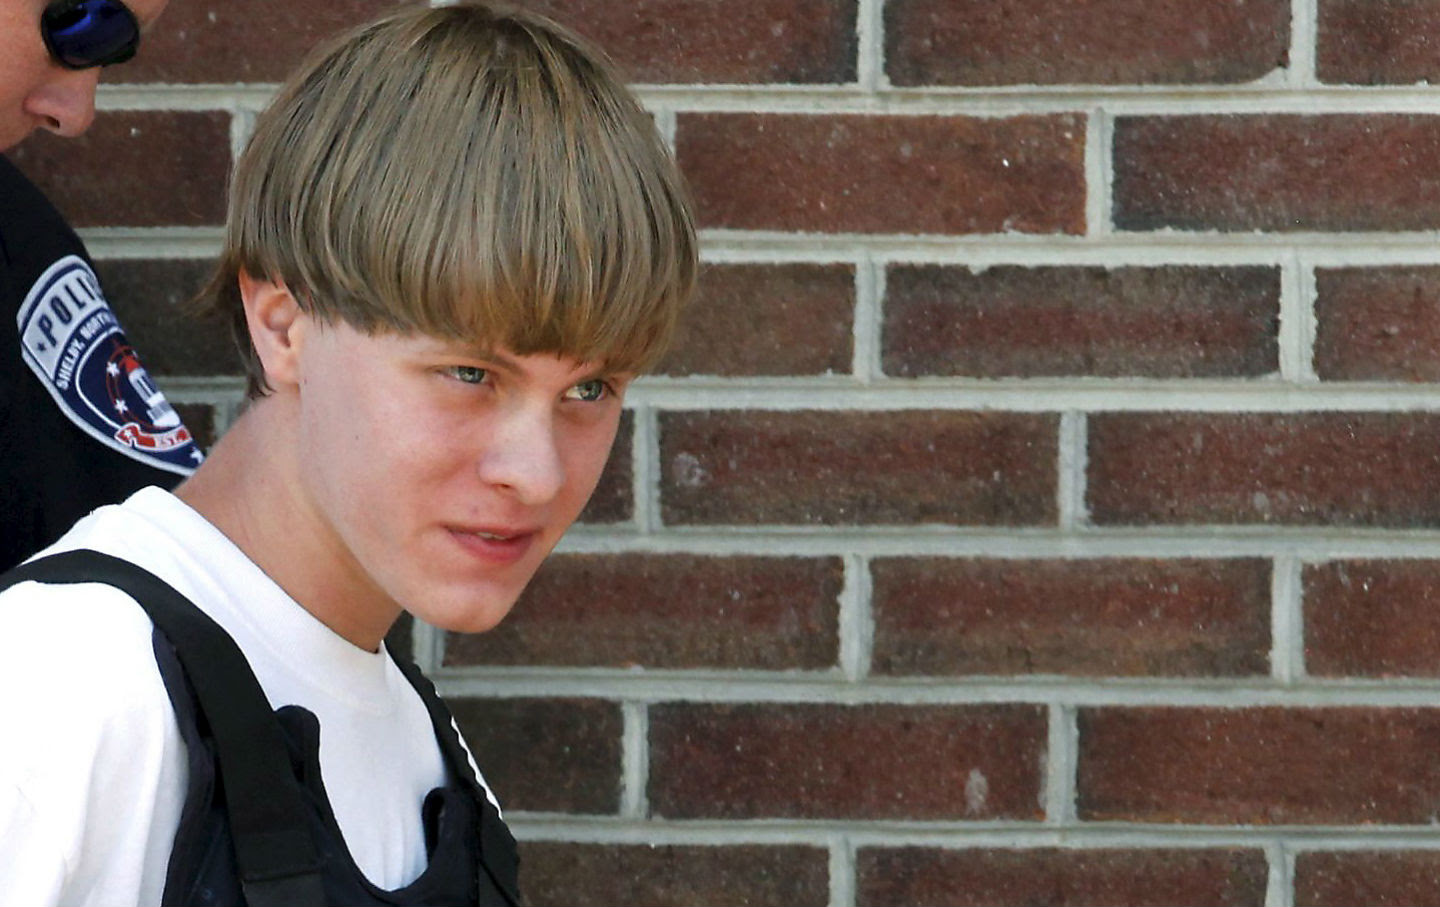 Police lead suspected shooter Dylann Roof, 21, into the courthouse in Shelby, North Carolina, June 18, 2015. Roof, a 21-year-old with a criminal record, is accused of killing nine people at a Bible-study meeting in a historic African-American church in Charleston, South Carolina.